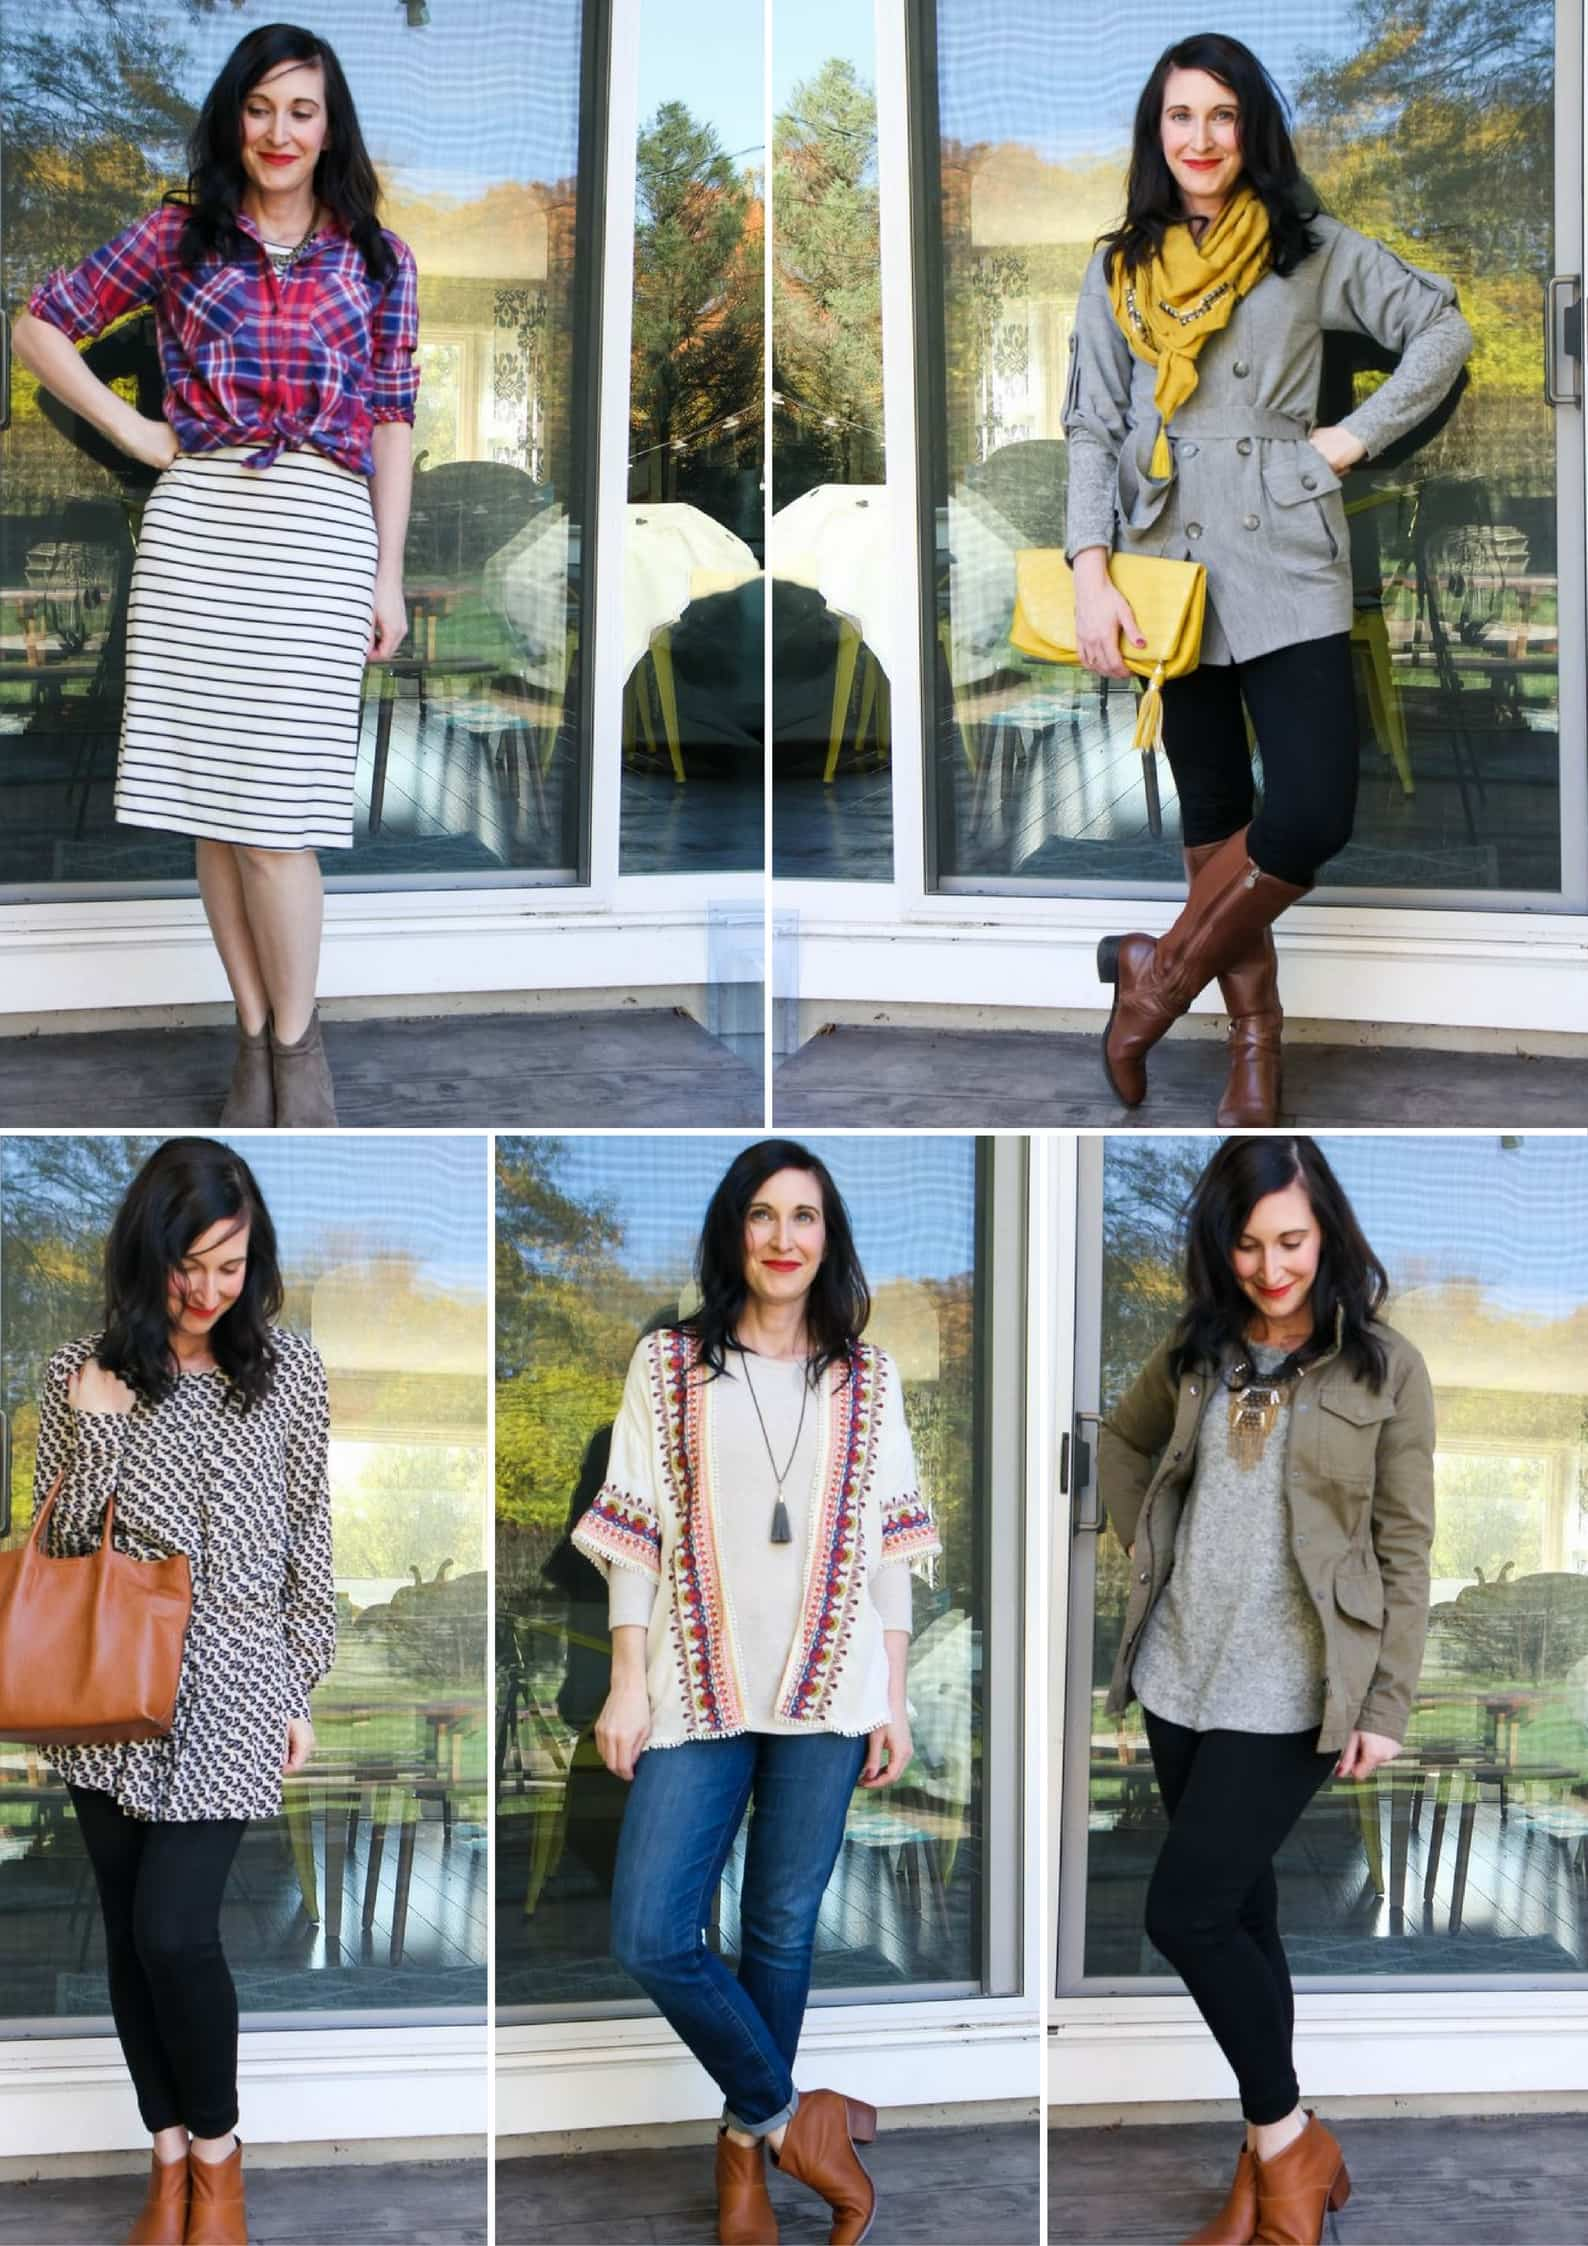 Fall Capsule Wardrobe Ideas from MomAdvice.com